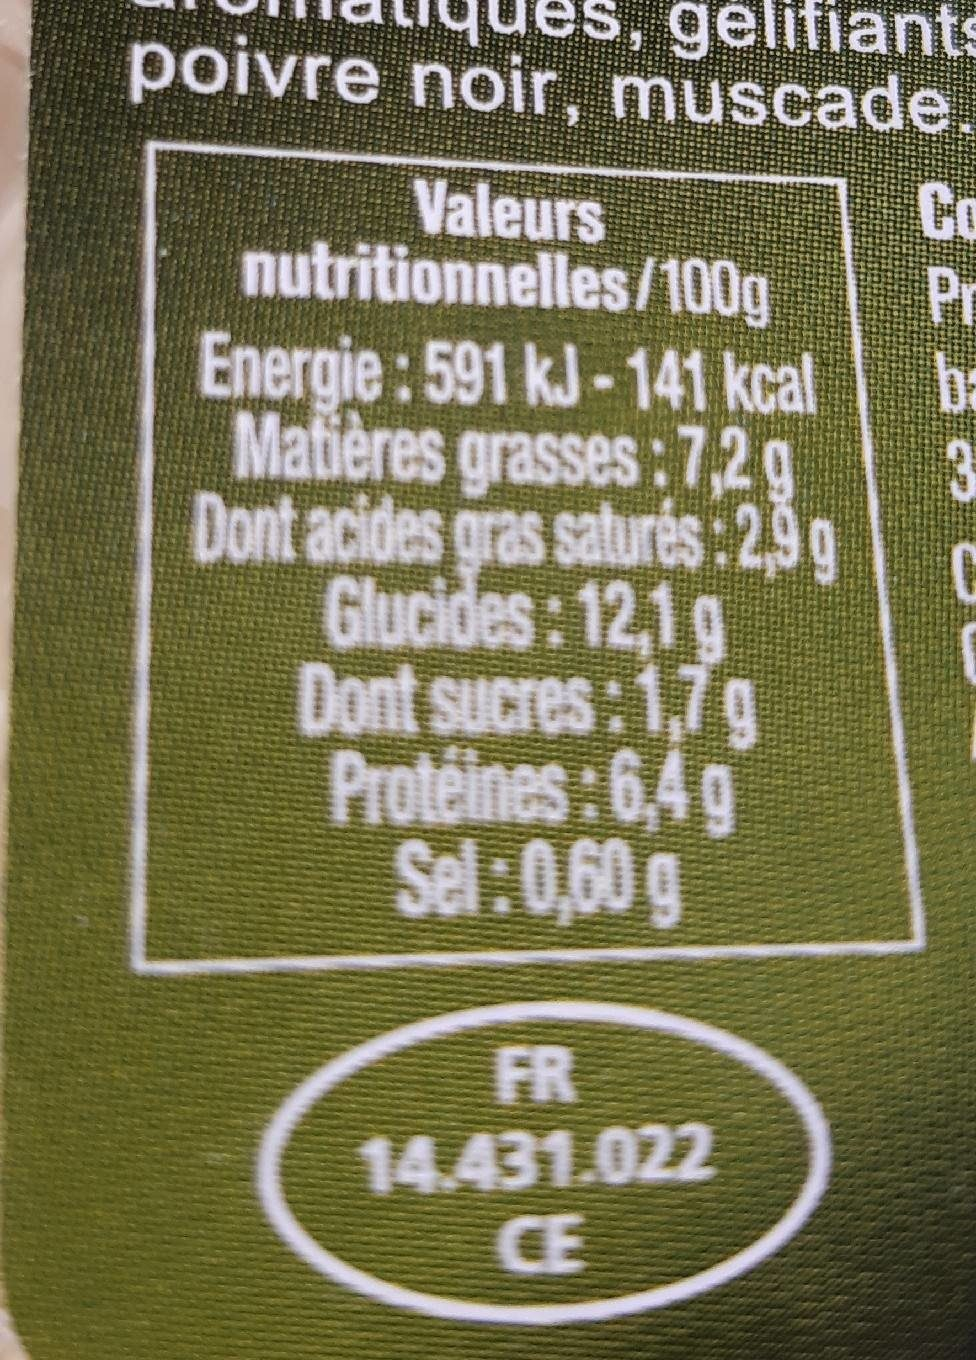 Lasagne bolognaise - Nutrition facts - fr